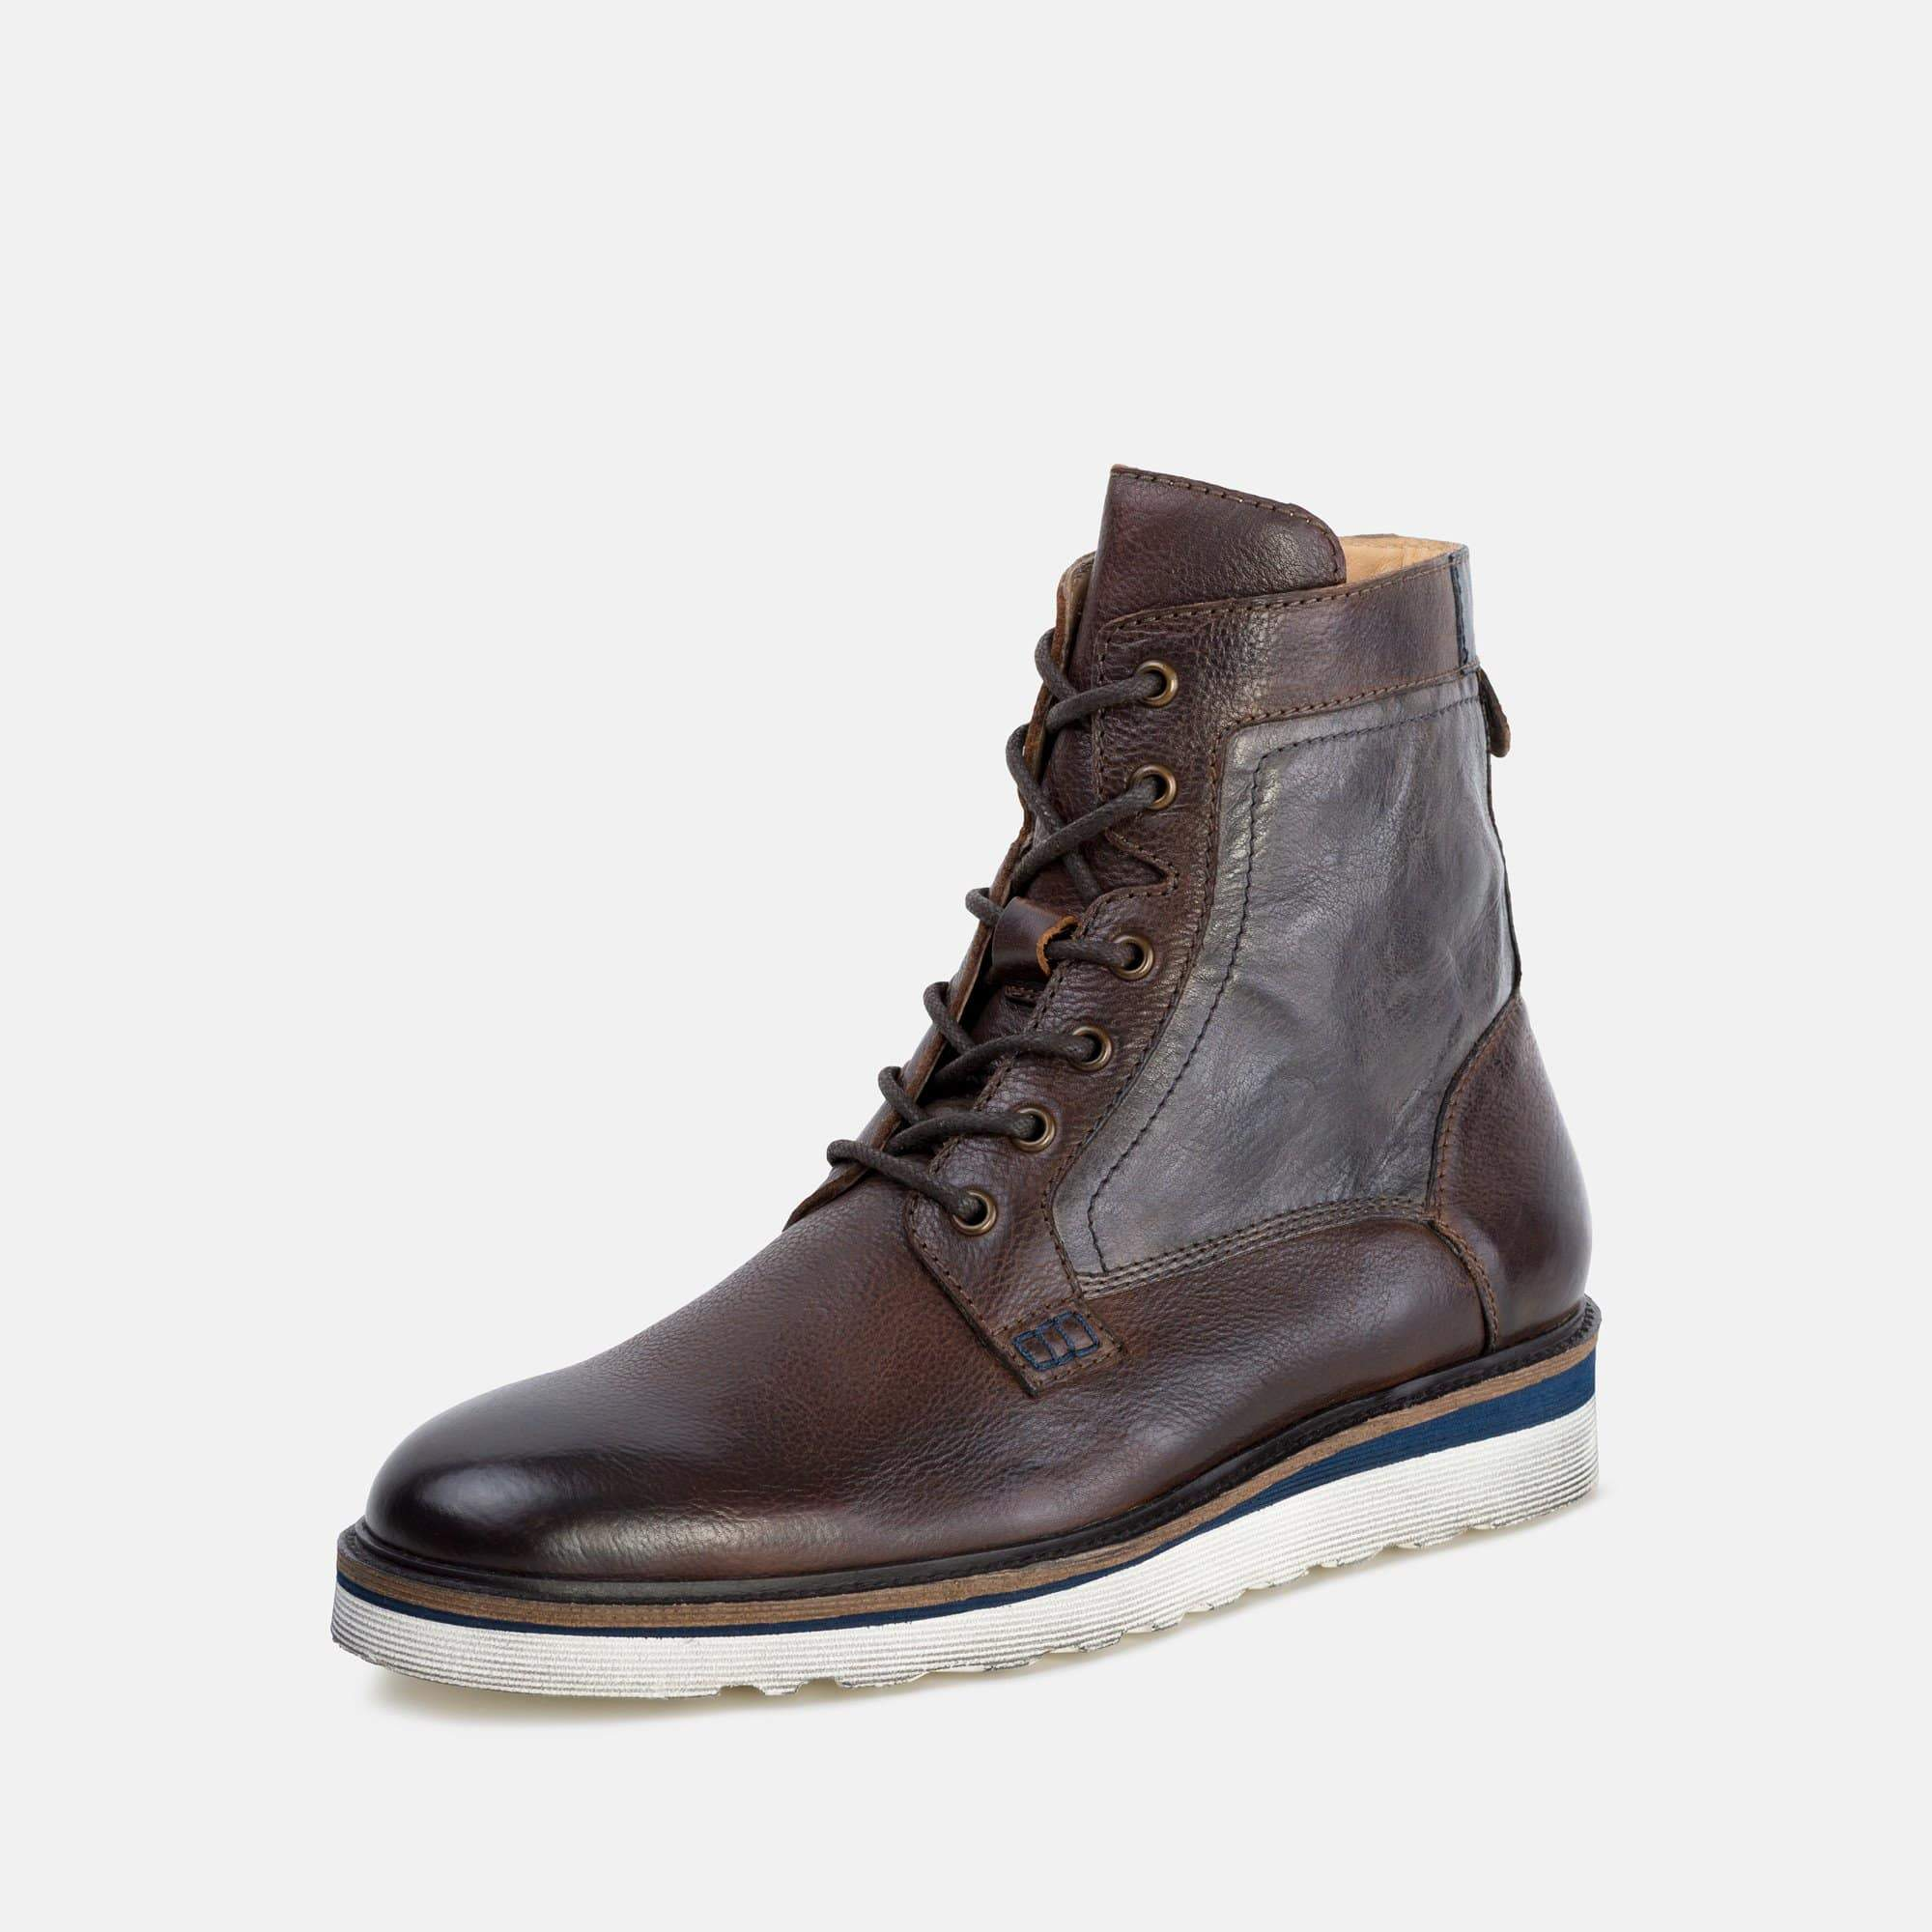 Goodwin Smith Footwear AW19 MEN'S LUTHER BROWN WEDGE BOOT